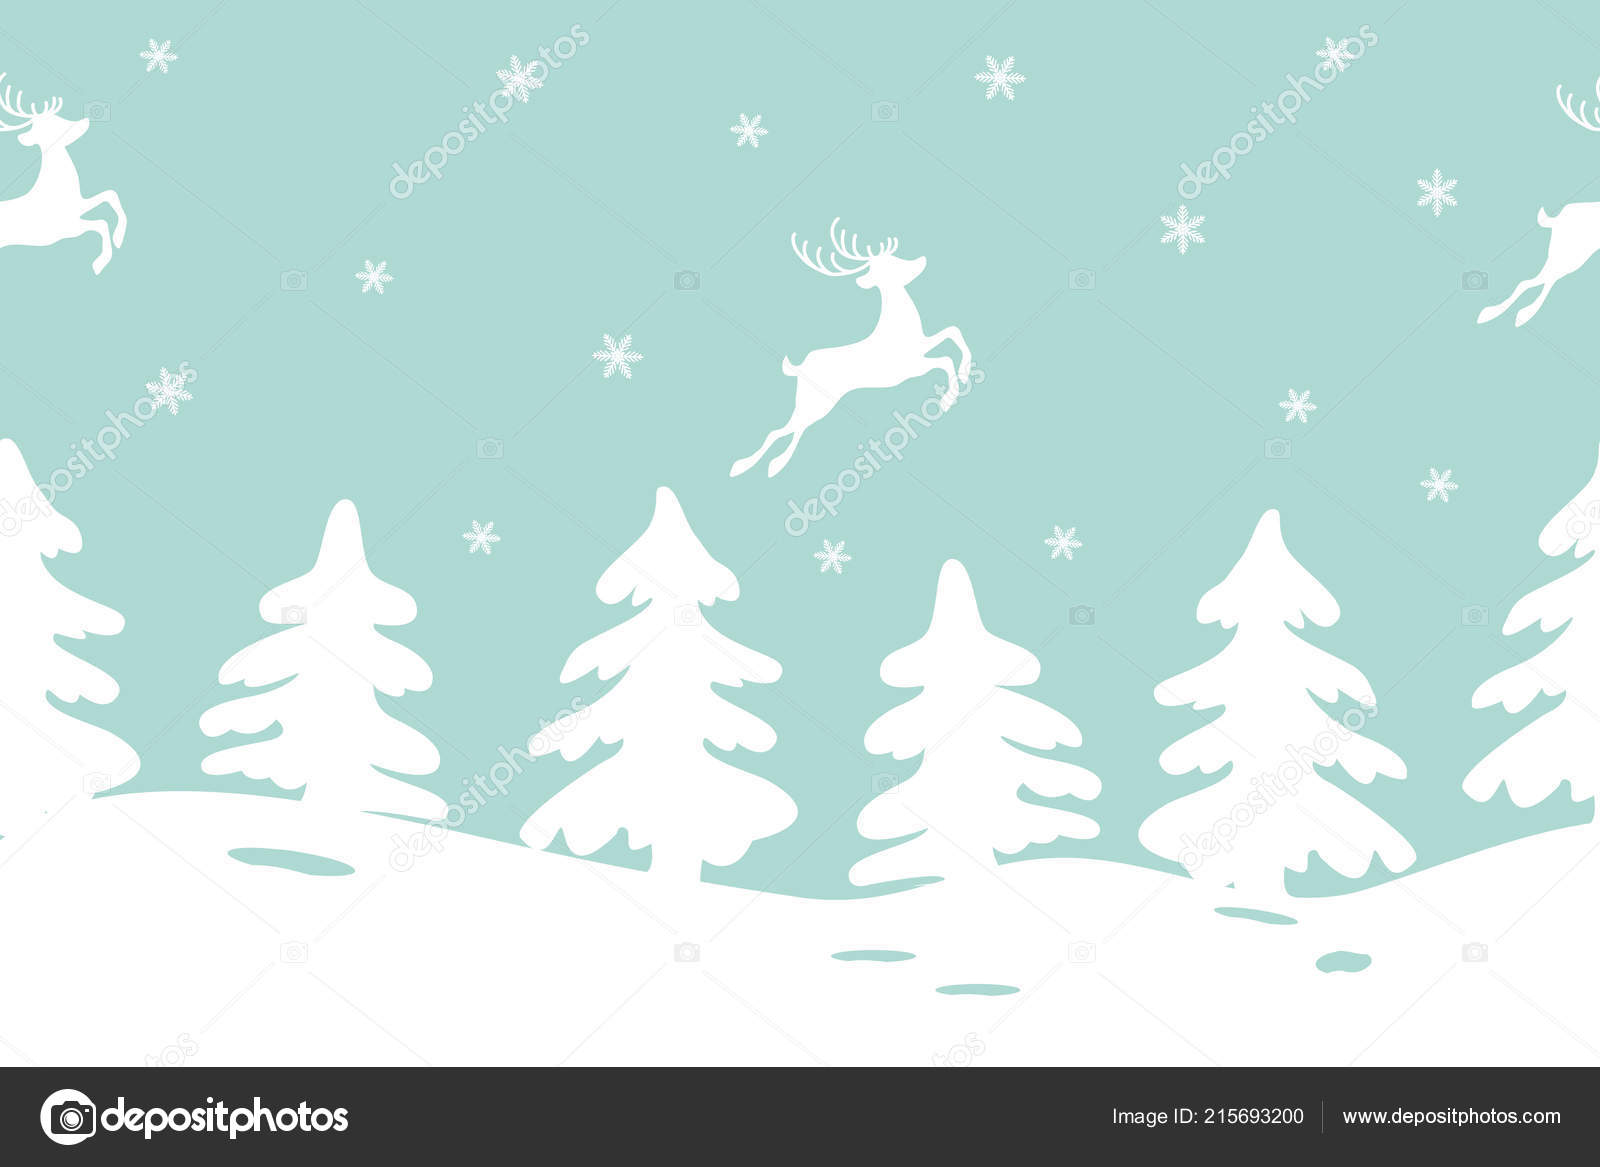 winter landscape with fir trees and deers seamless border it can be used for christmas and new year decoration as a background for the websites packing